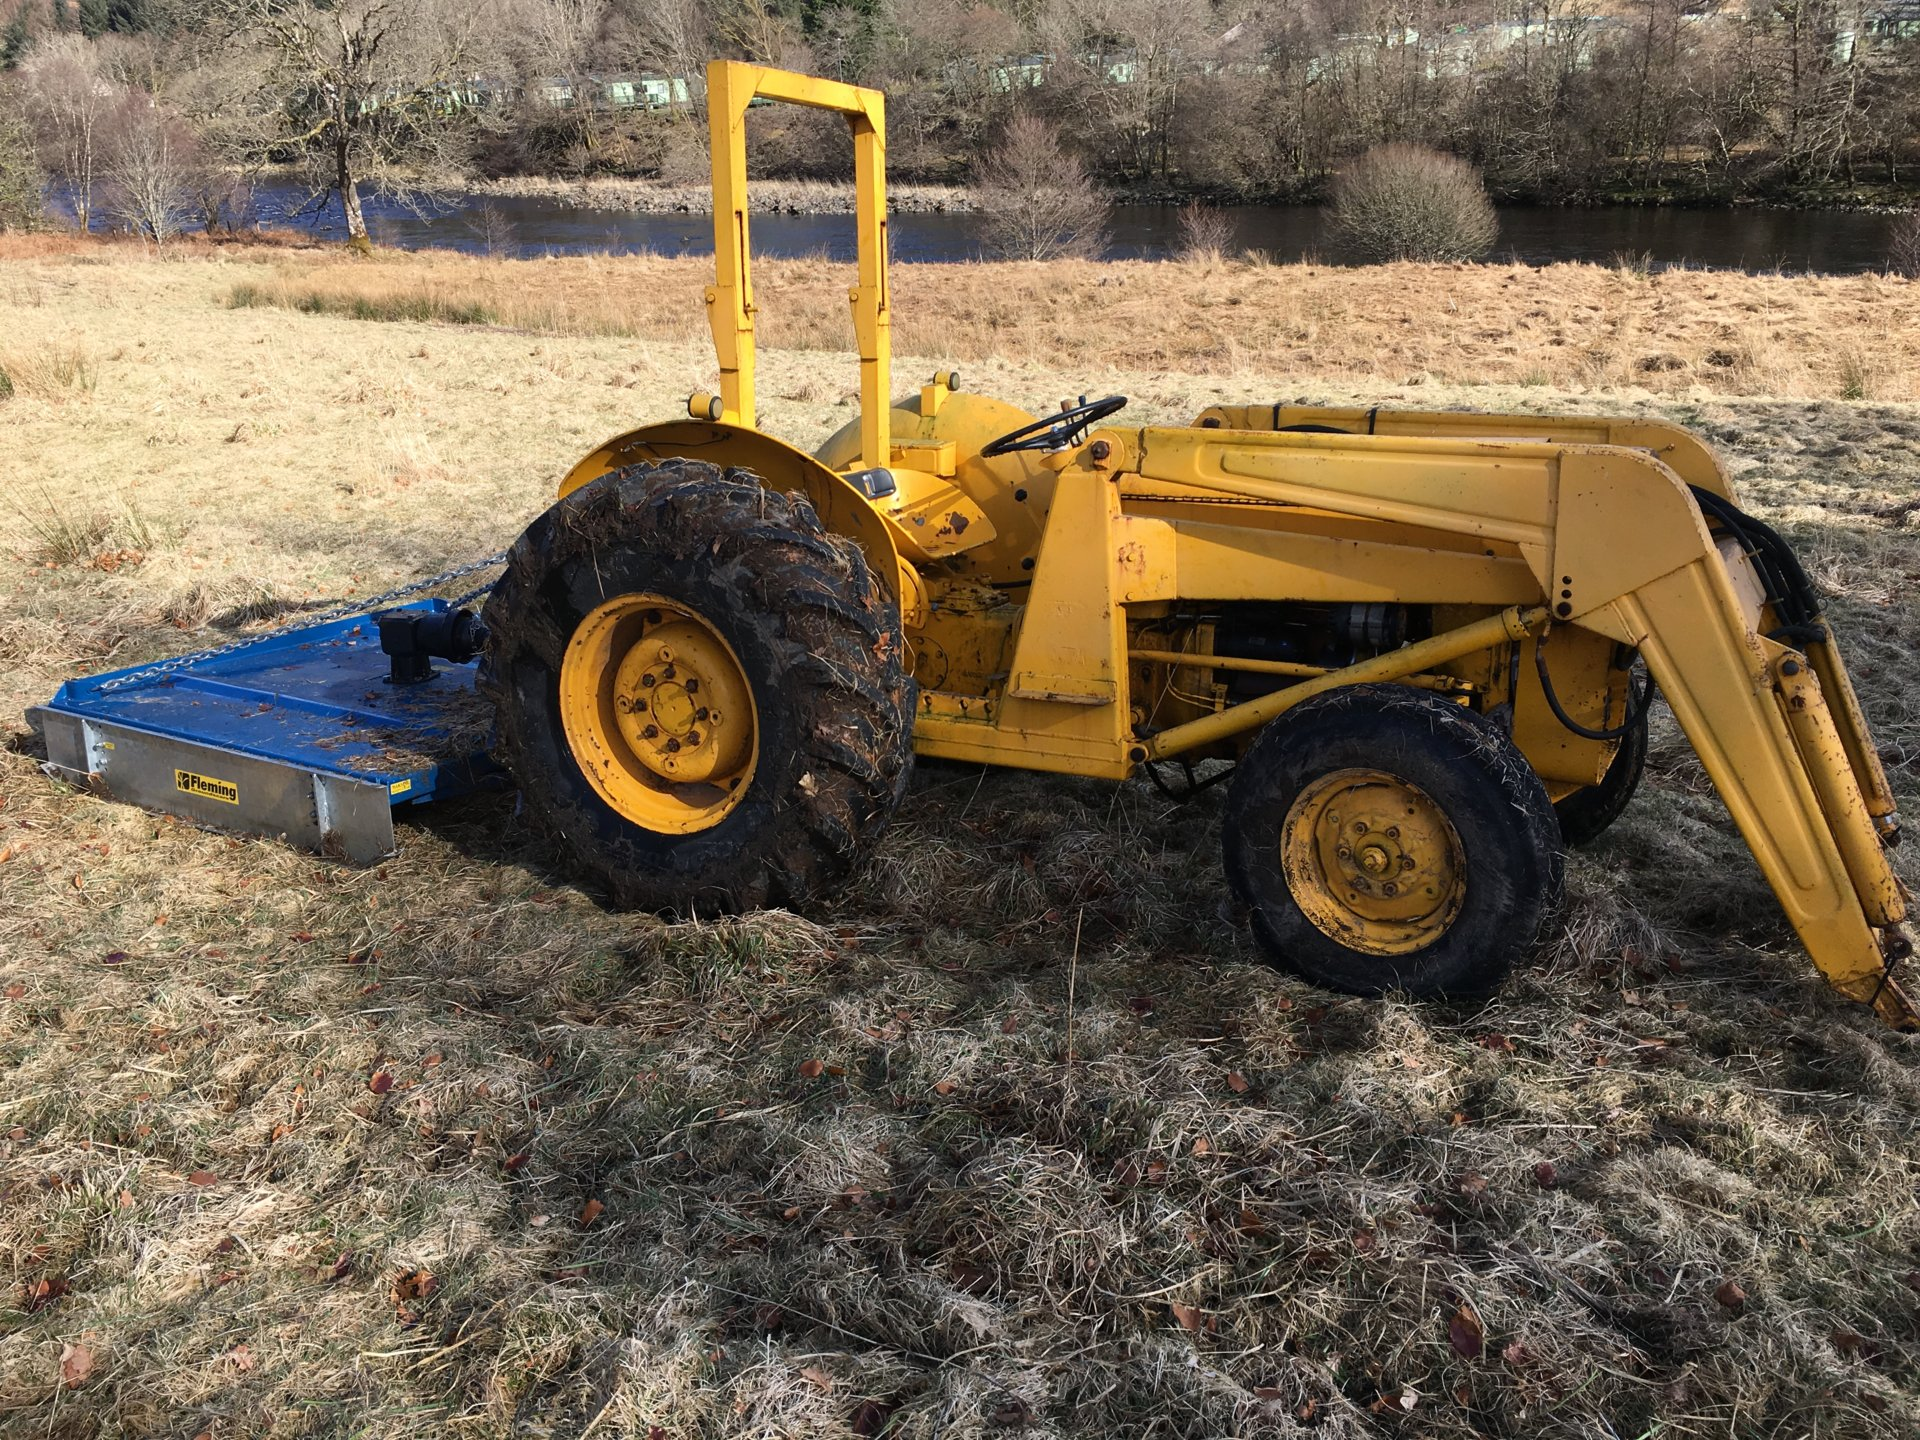 Topper for MF135 | The Farming Forum